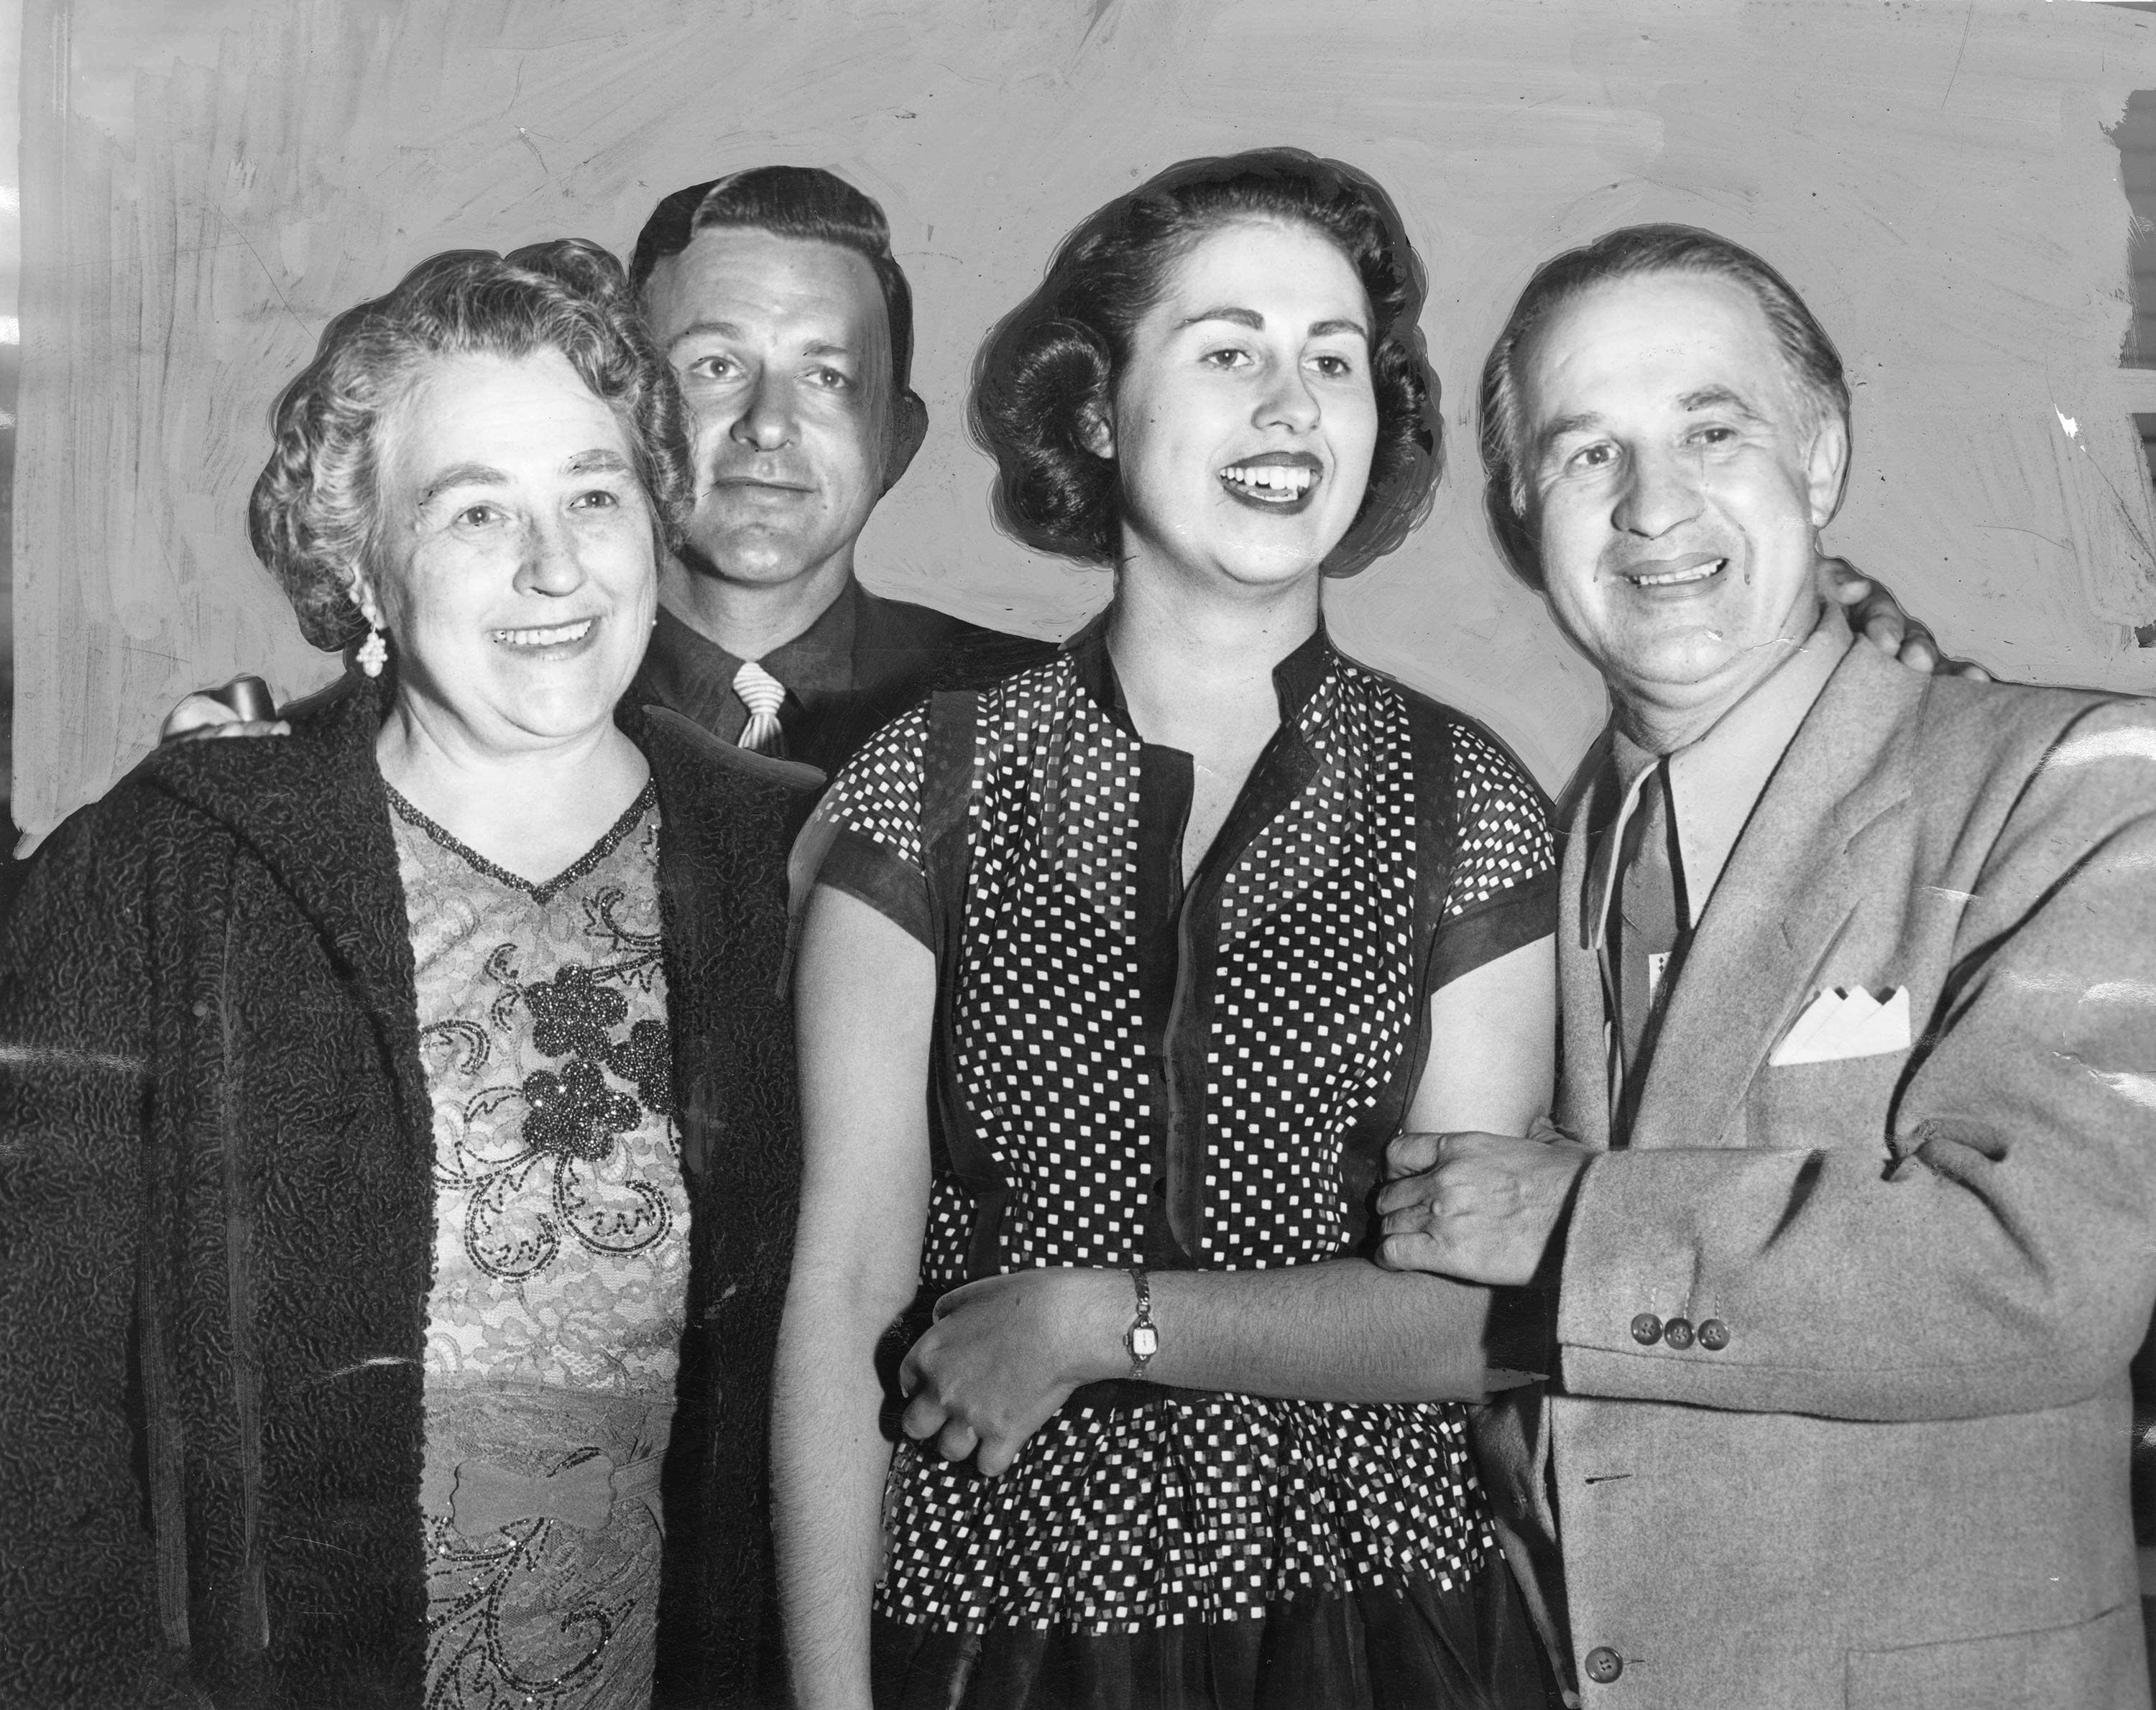 Newly elected councilwoman Rosalind Weiner with her family. LA Herald Examiner Photo Collection, Los Angeles Public Library